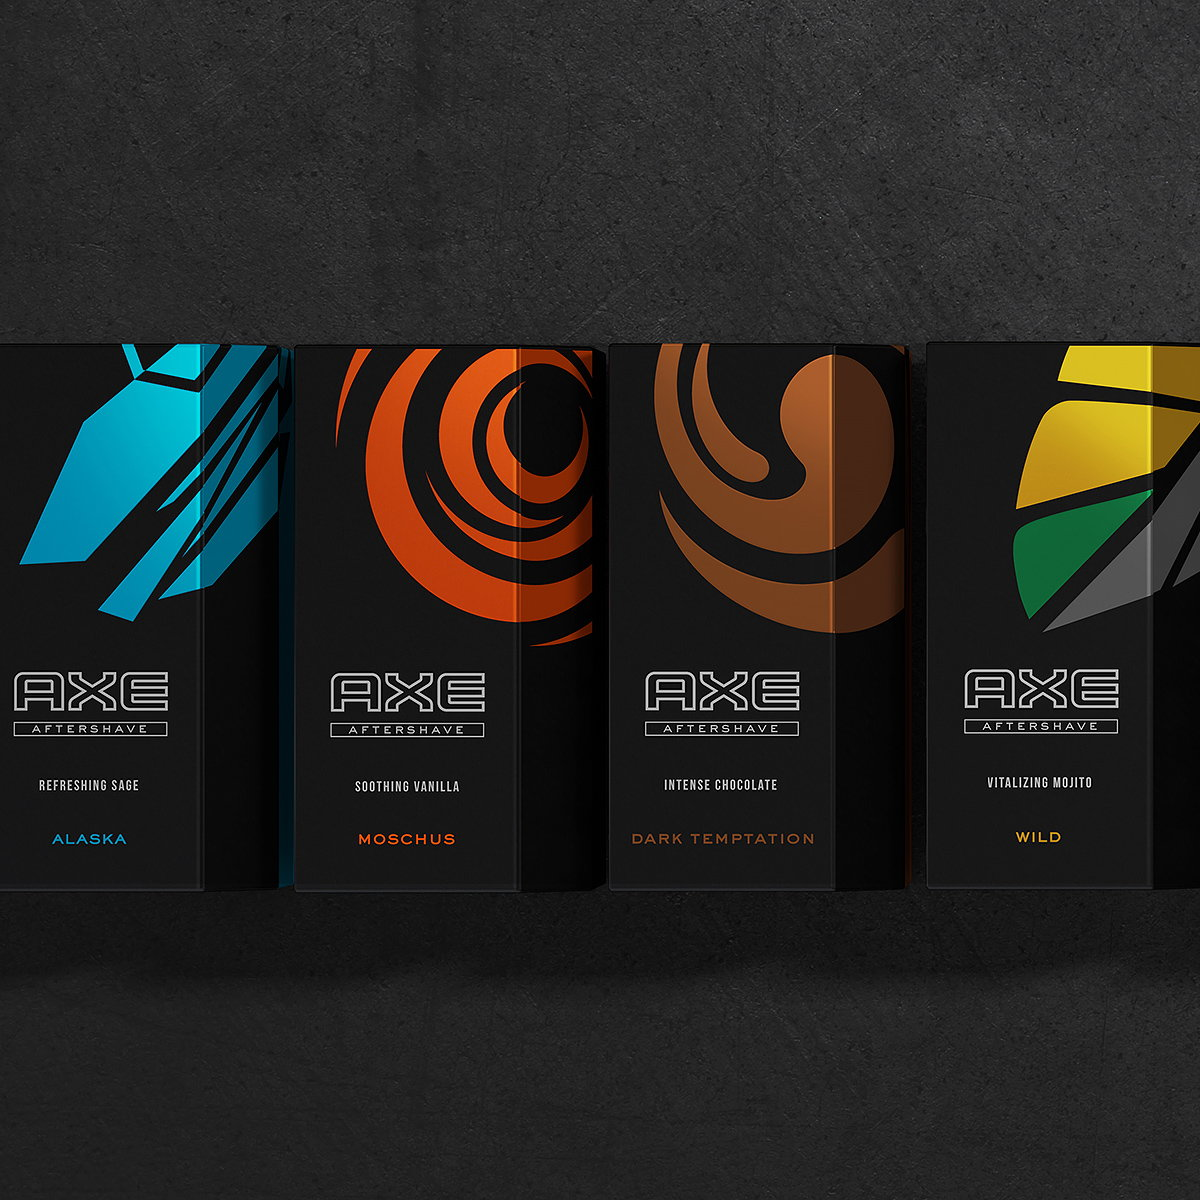 PB Creative Reinvents AXE Fragrance Platform for New Generation